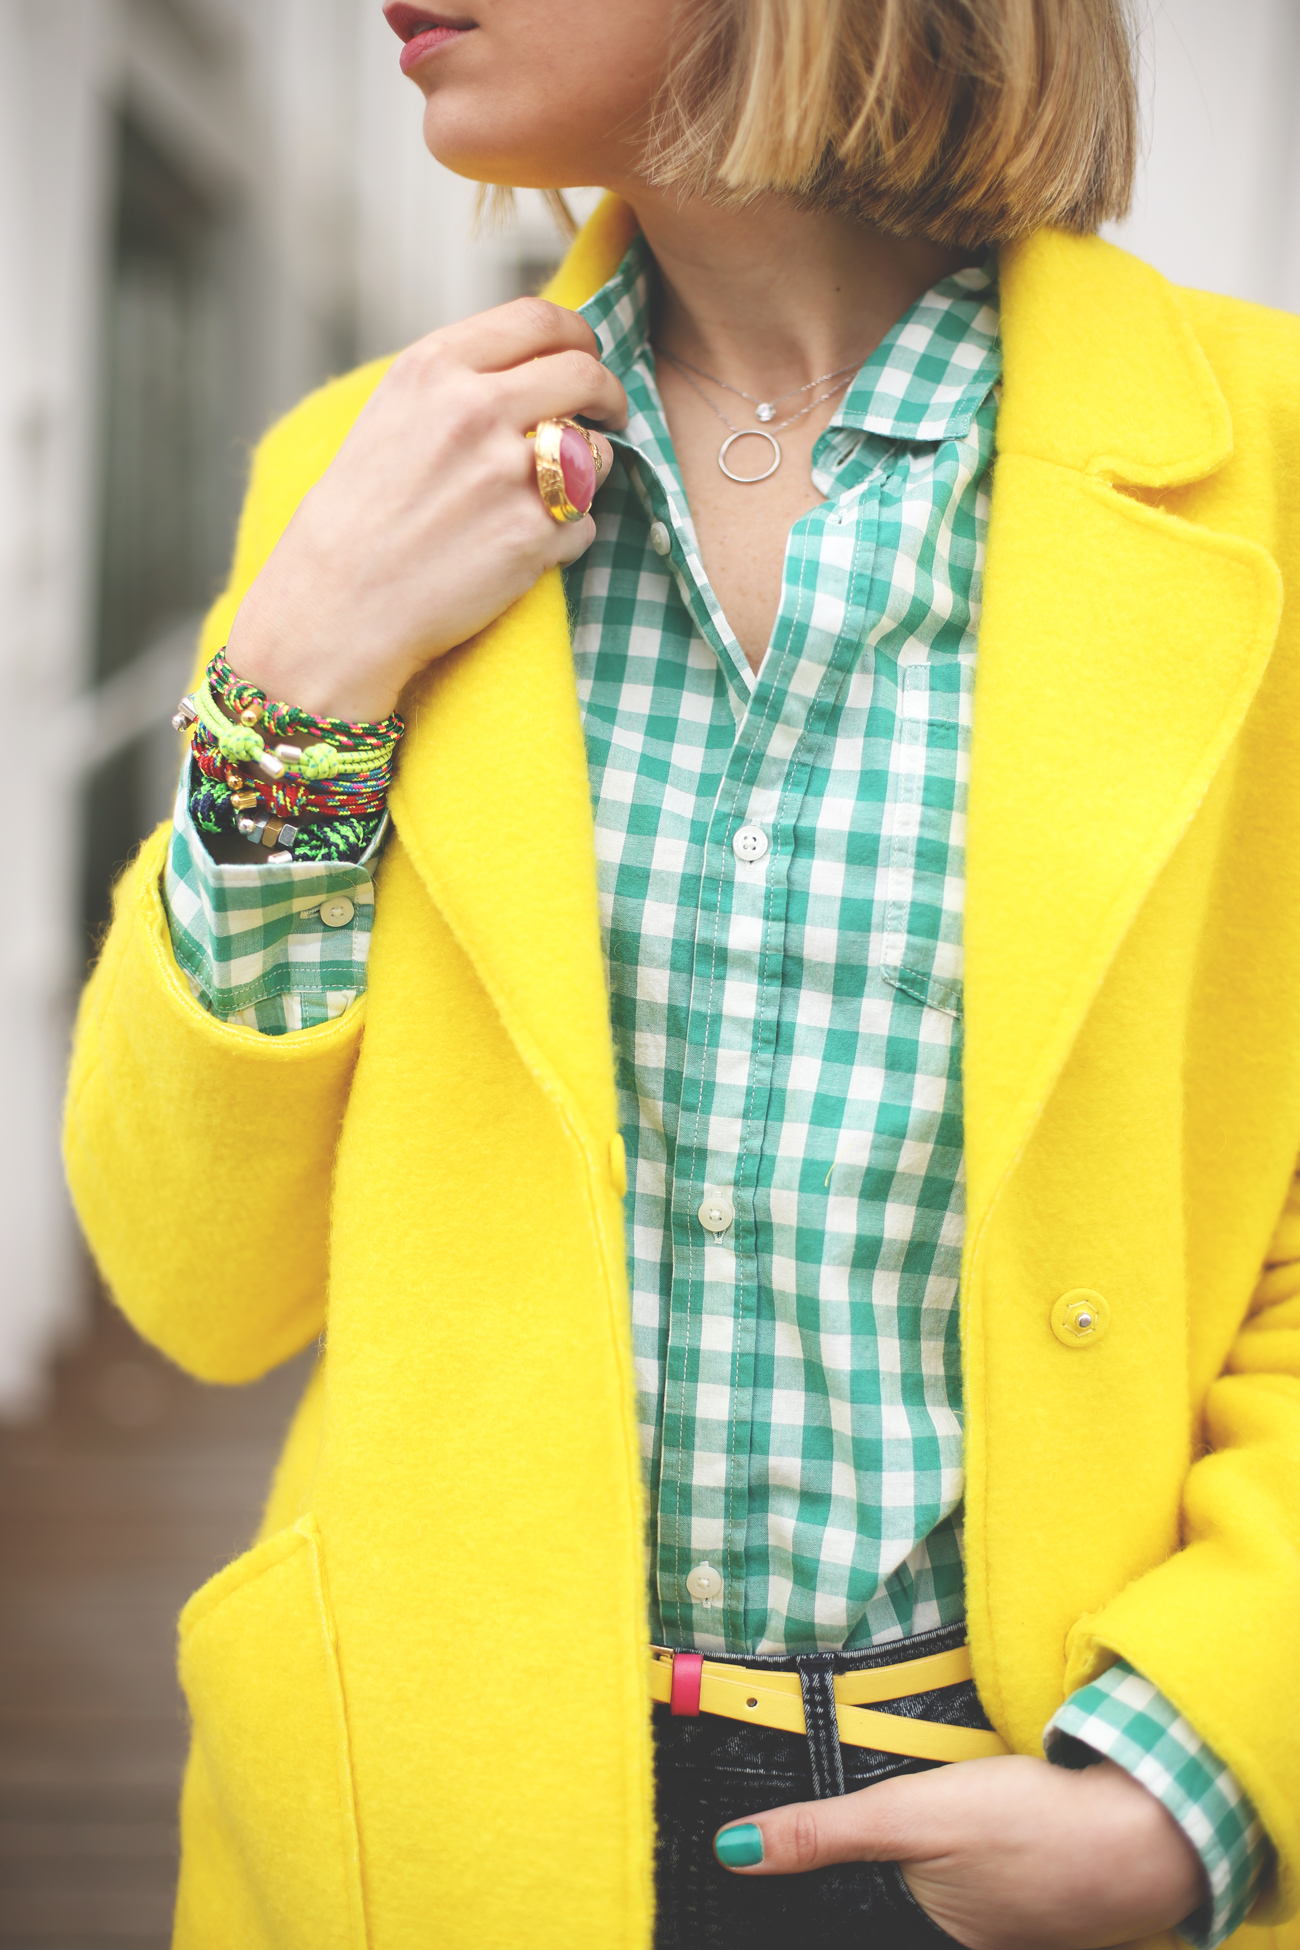 Fashion blogger, colorful, yellow coat, happy birthday, look con jeans, sandalias flores, steve madden, camisa de cuadros, abrigo amarillo, blonde, girl,